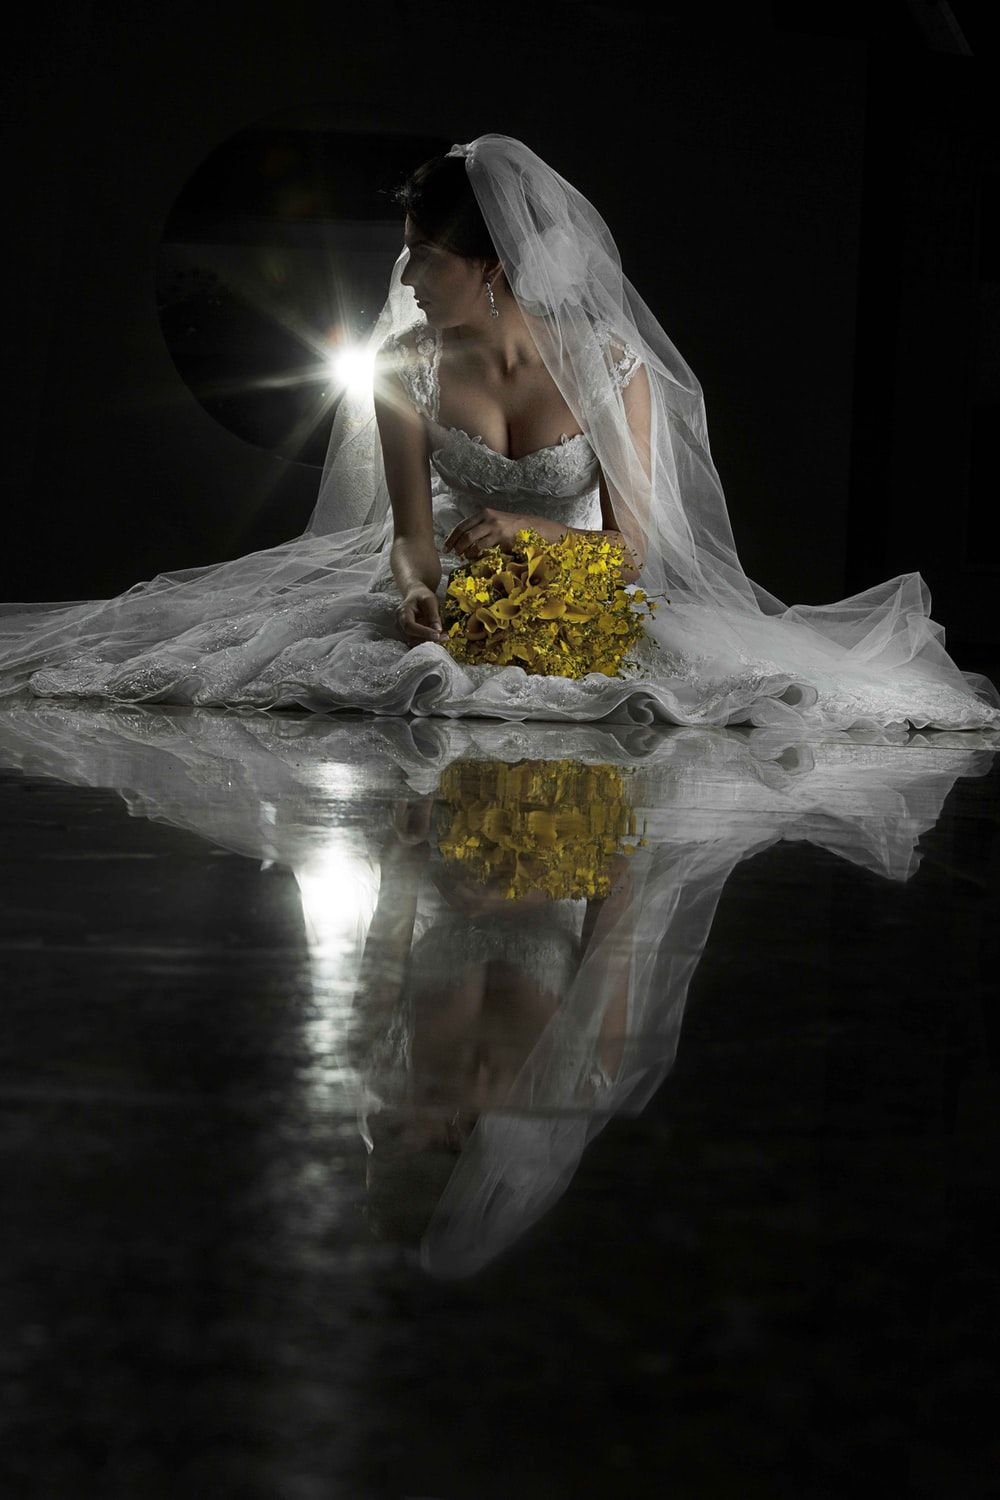 woman in white sleeveless wedding dress holding yellow bouquet of flowers